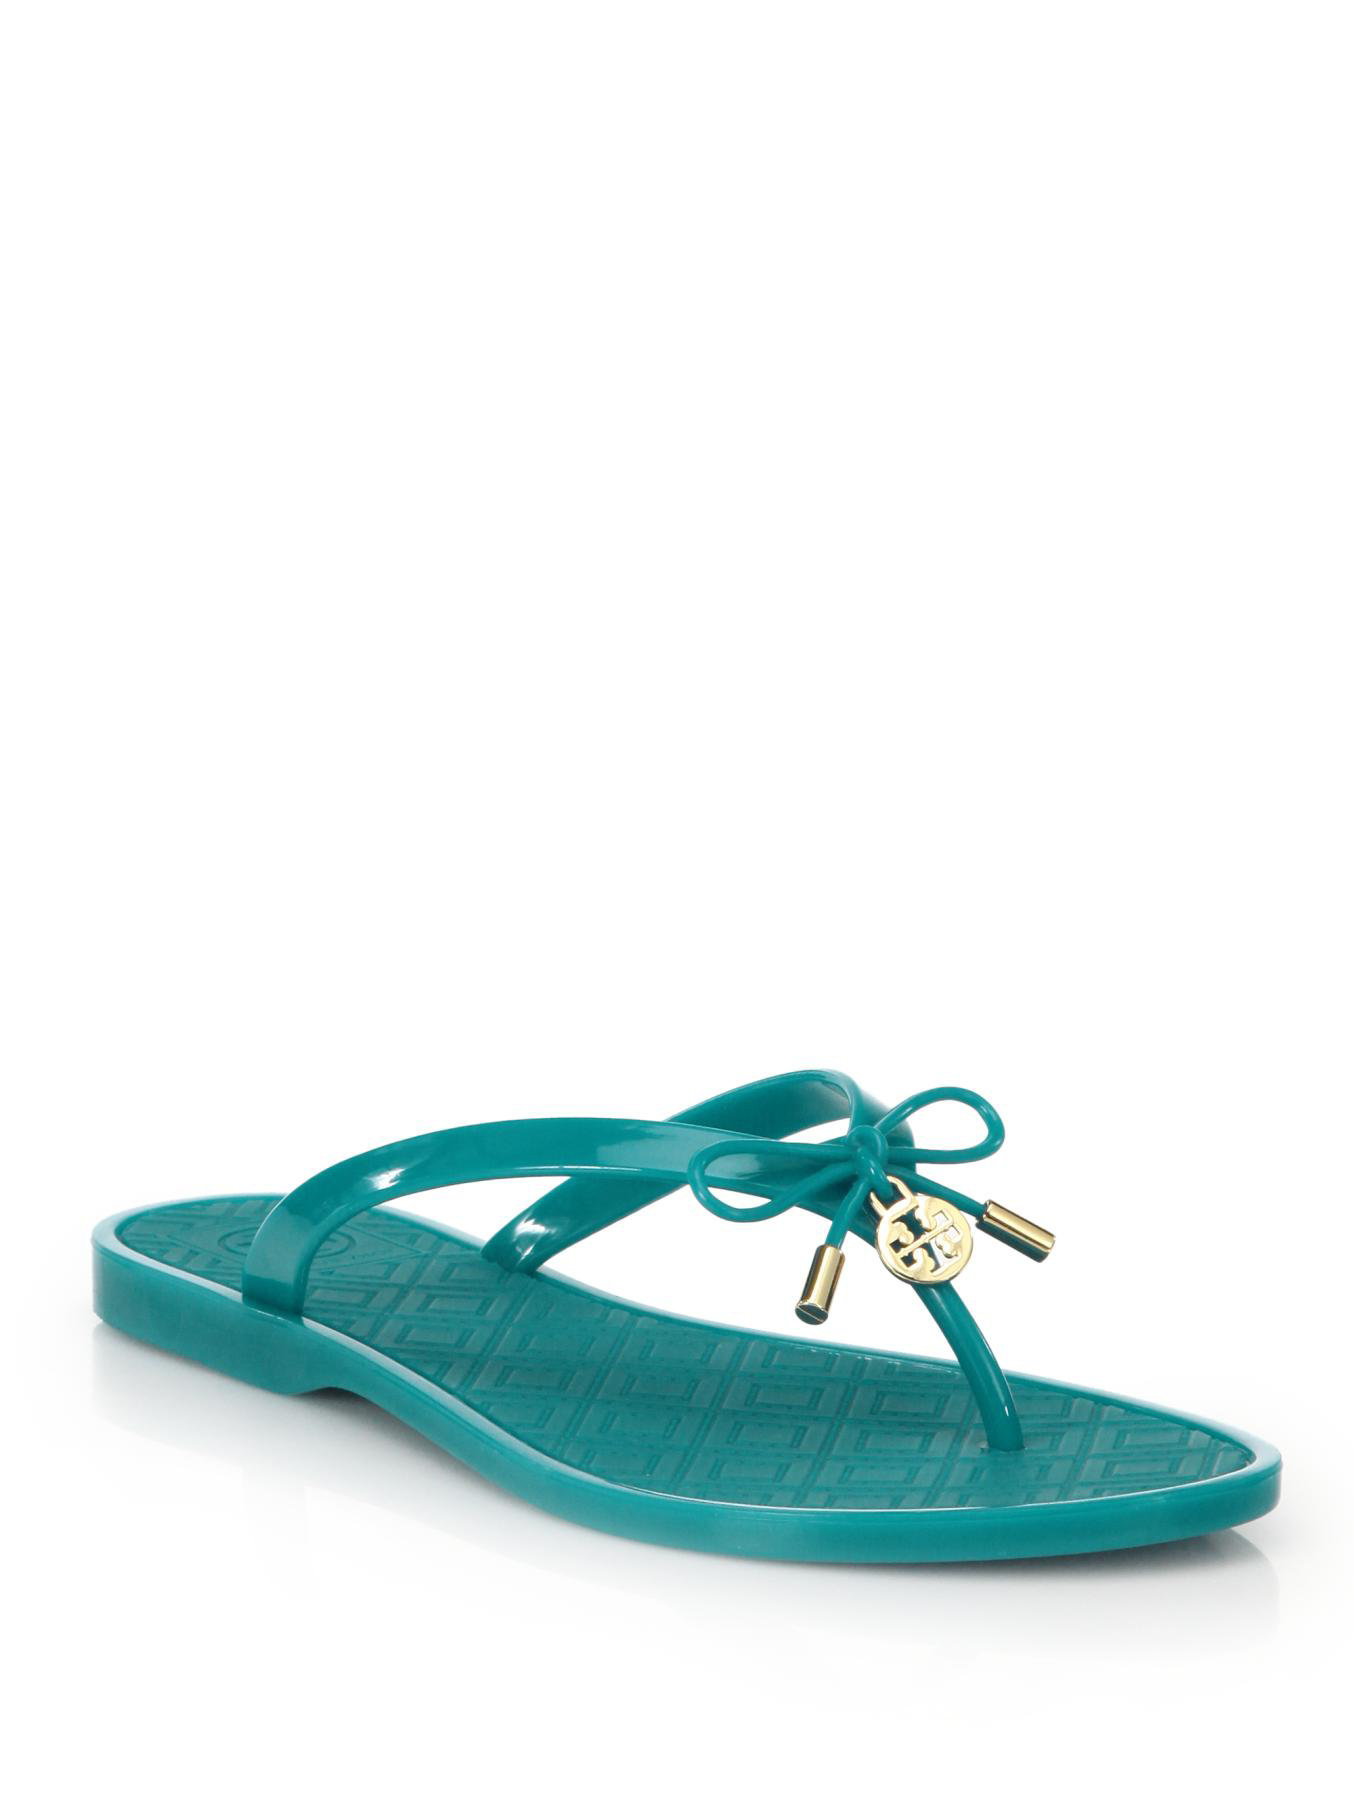 cca1d9ddc0ae Lyst - Tory Burch Jelly Bow Thong Sandals in Blue